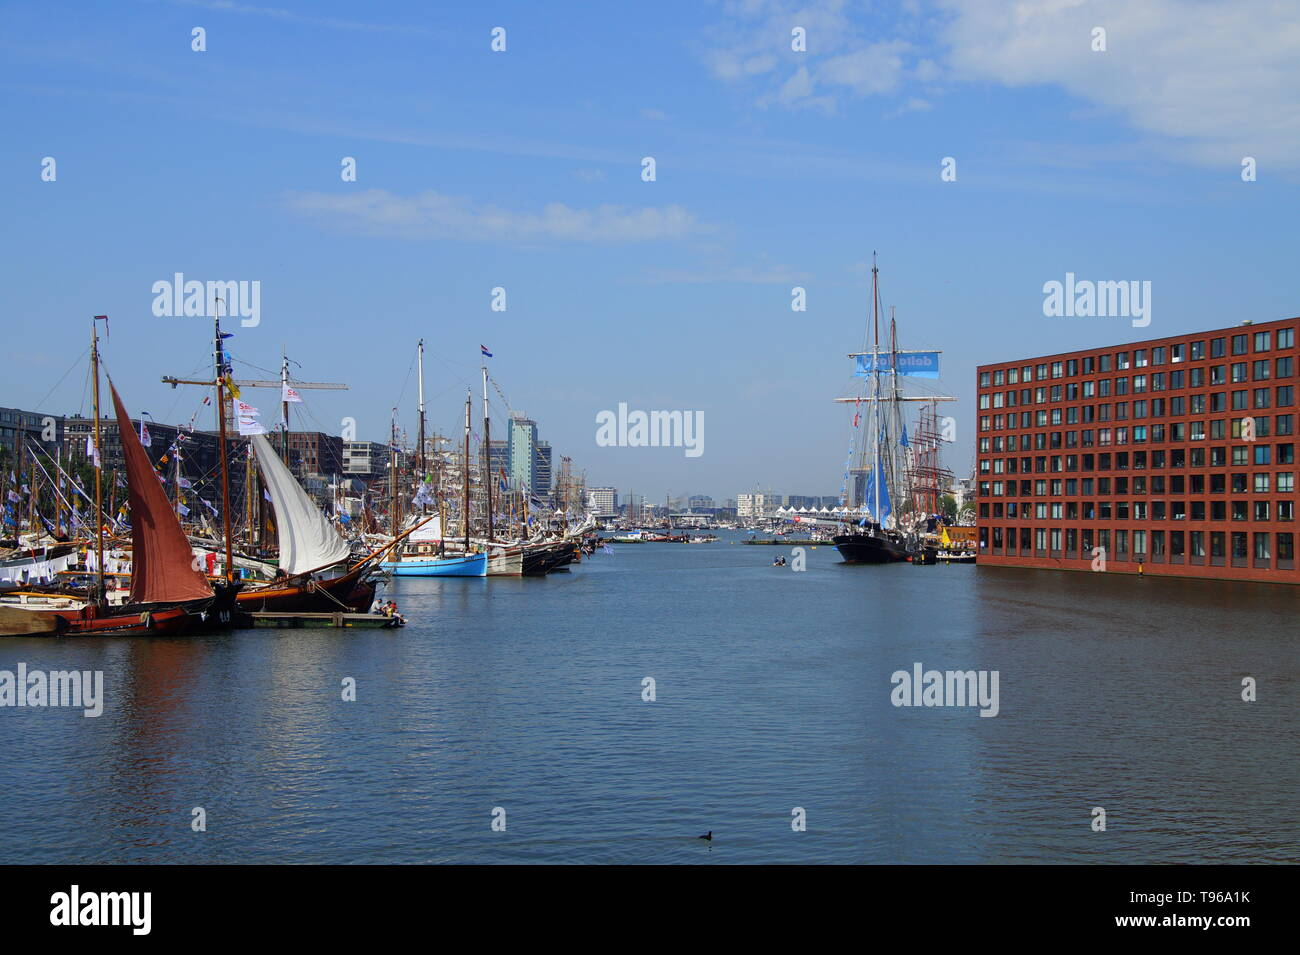 Amsterdam, the Netherlands - August 22, 2015: Long view over IJ harbor during SAIL Amsterdam 2015. - Stock Image